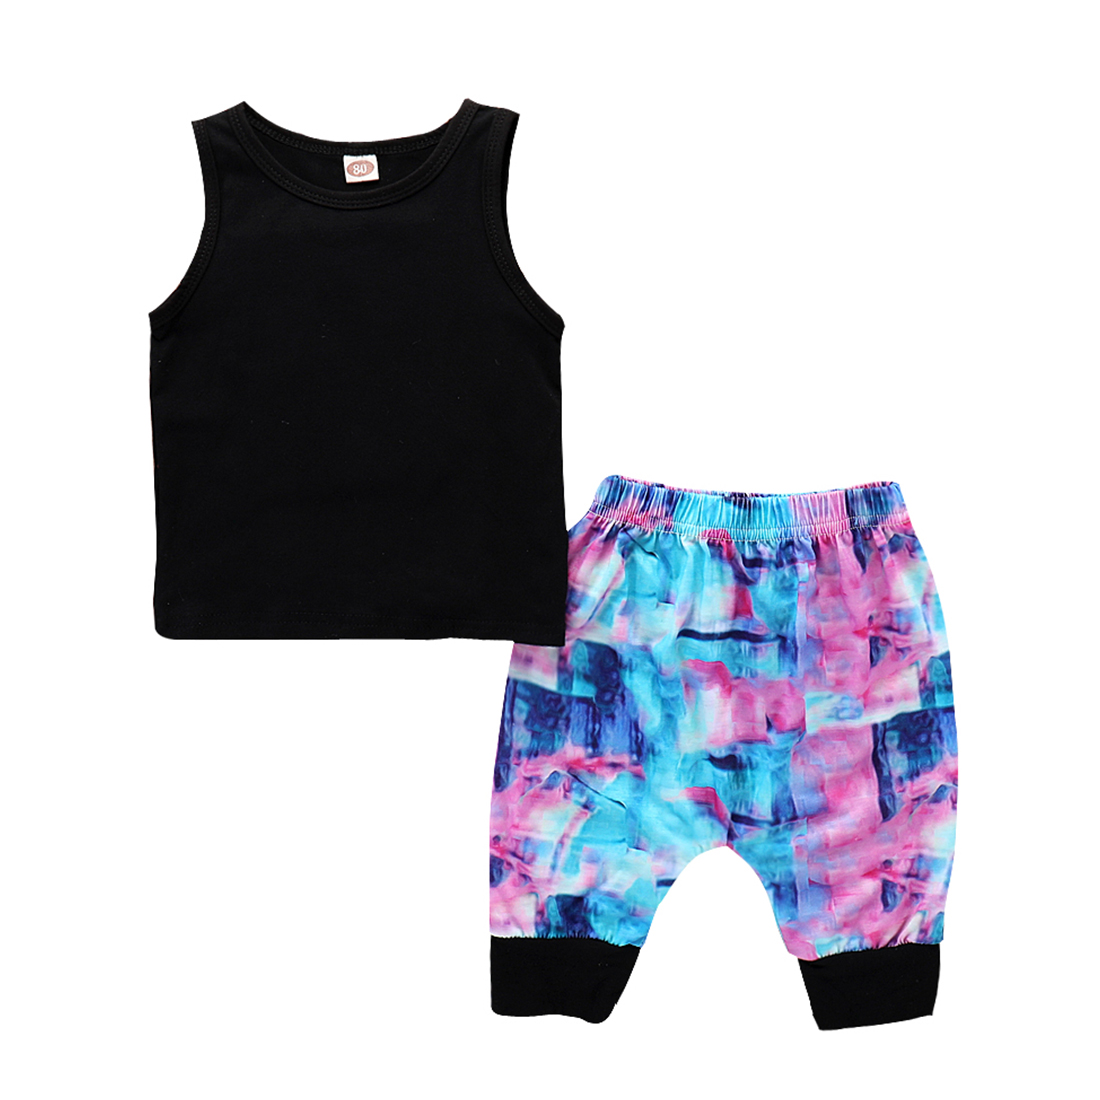 Fashion Kids Tanks Boy Girls Party Set Vest+pants Children Holiday Beach Casual Daily Wear Sleeveless Short Soft And Antislippery